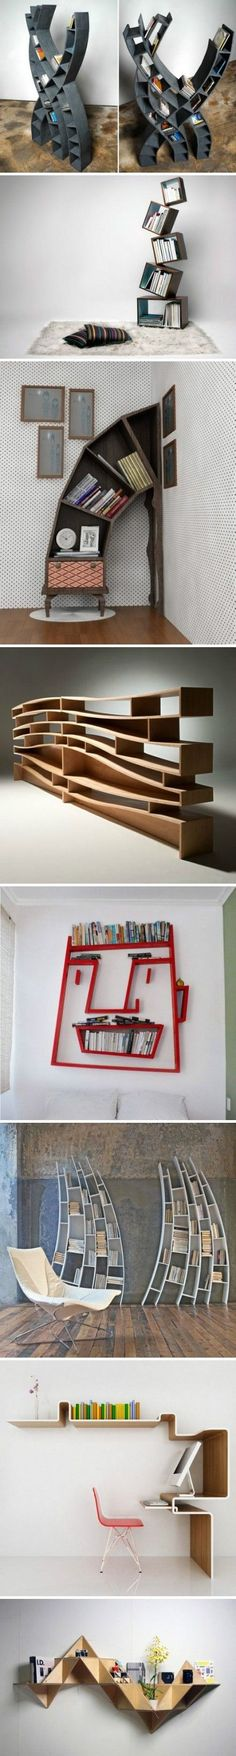 Unique DIY Book Shelves by katharine